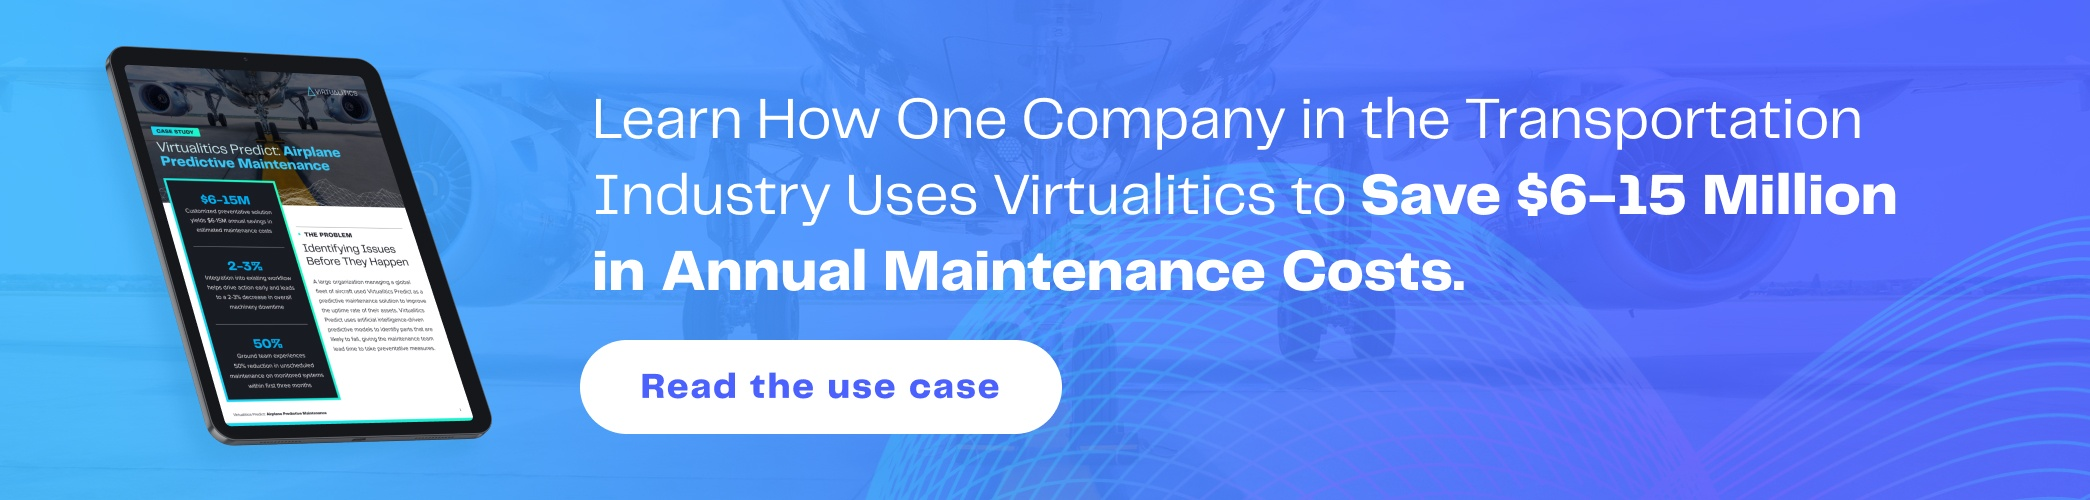 Learn more about using your data efficiently in the transportation industry